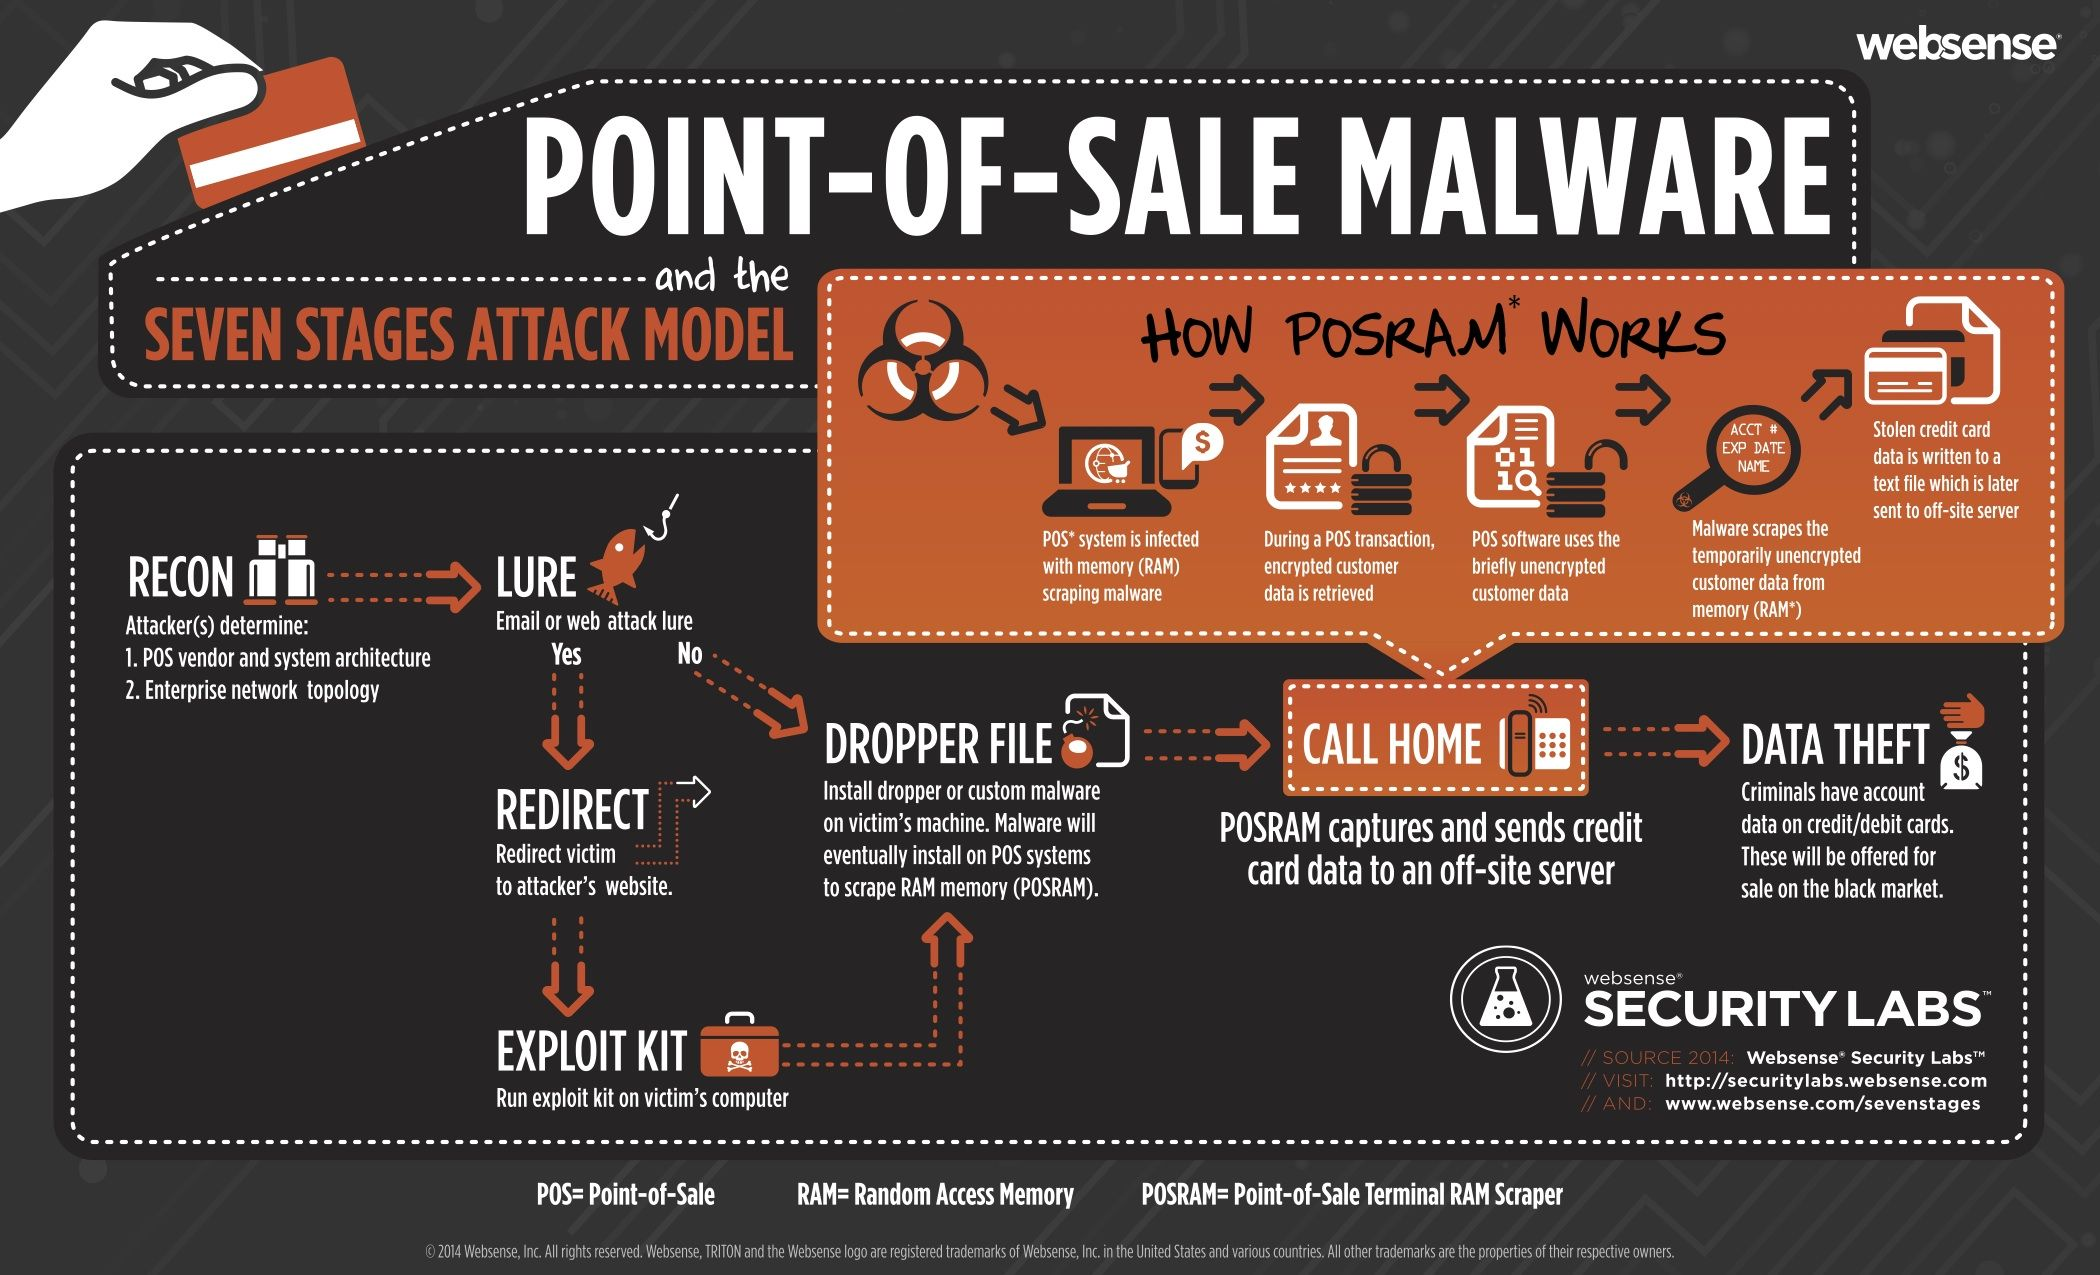 Point Of Sale malware & 7 stages of attack model. Websense